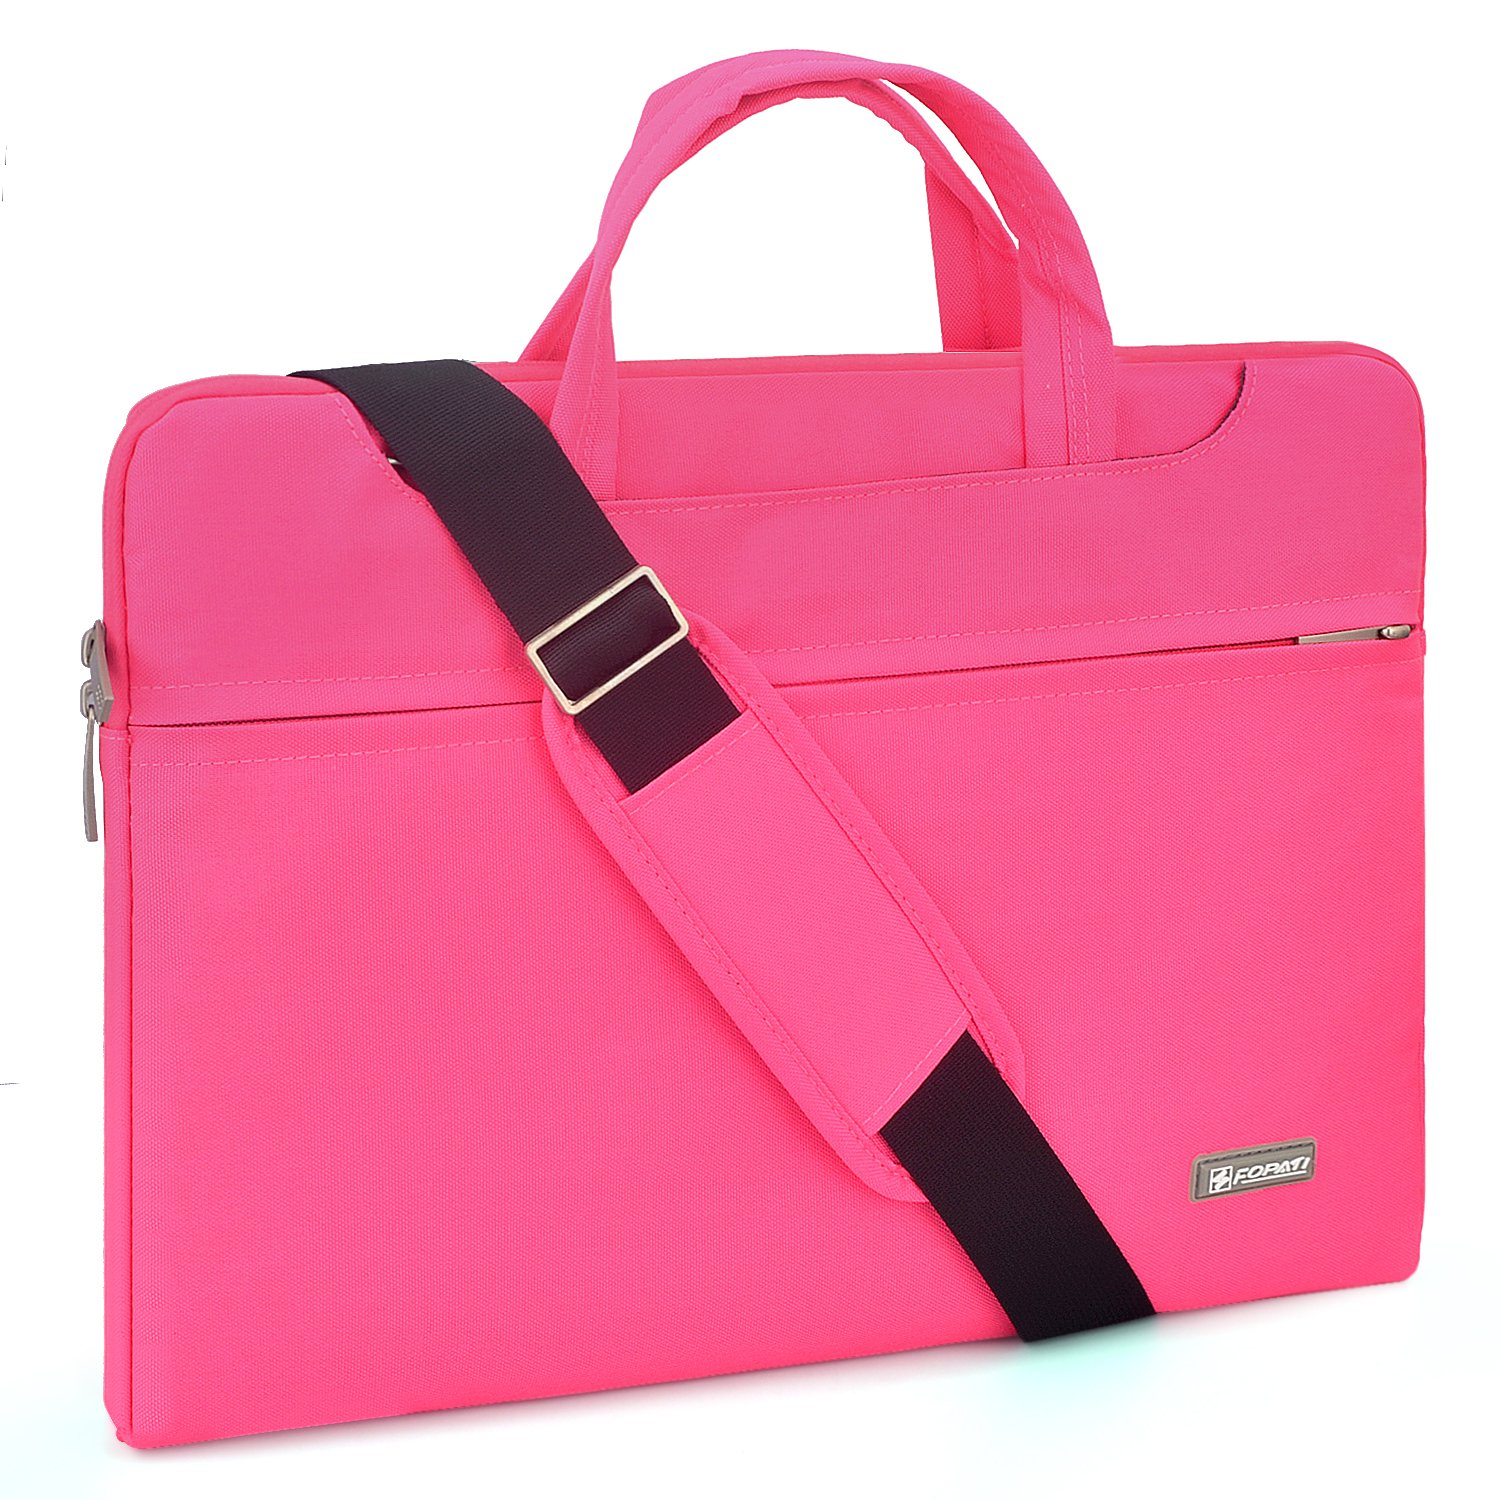 11-11.6 inch Laptop Case, Waterproof Computer Bag Business Carrying Sleeve Case Notebook Shoulder Messenger Bag For Macbook Air 11/Surface Pro 4 3/HP ASUS Dell Acer Samsung 11'' Tablet - Pink